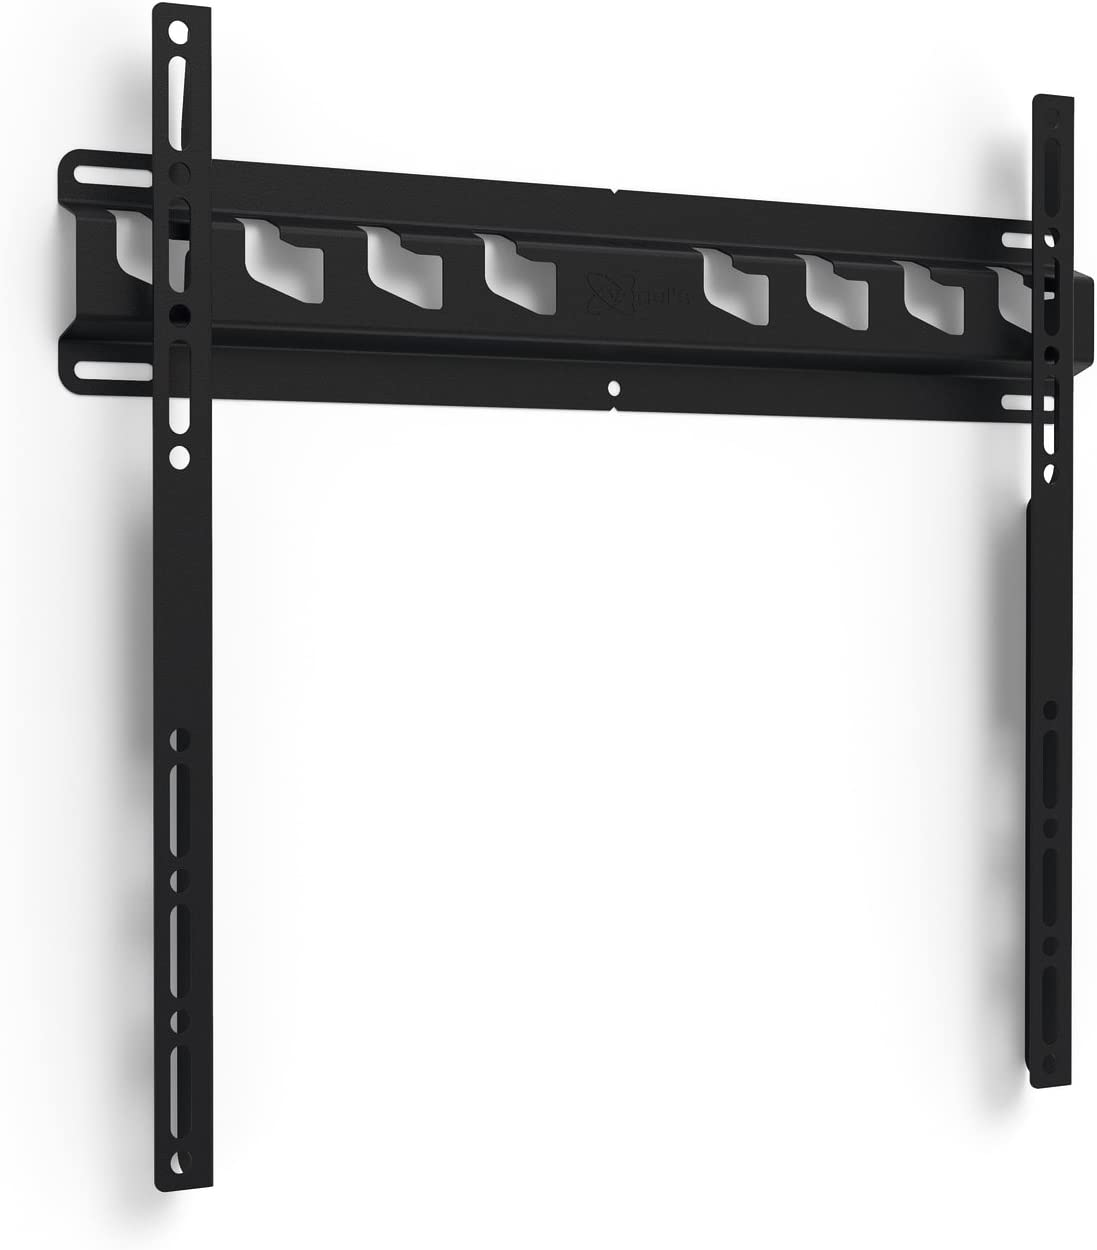 Vogels MA3000 - Soporte de pared para TV de hasta 55